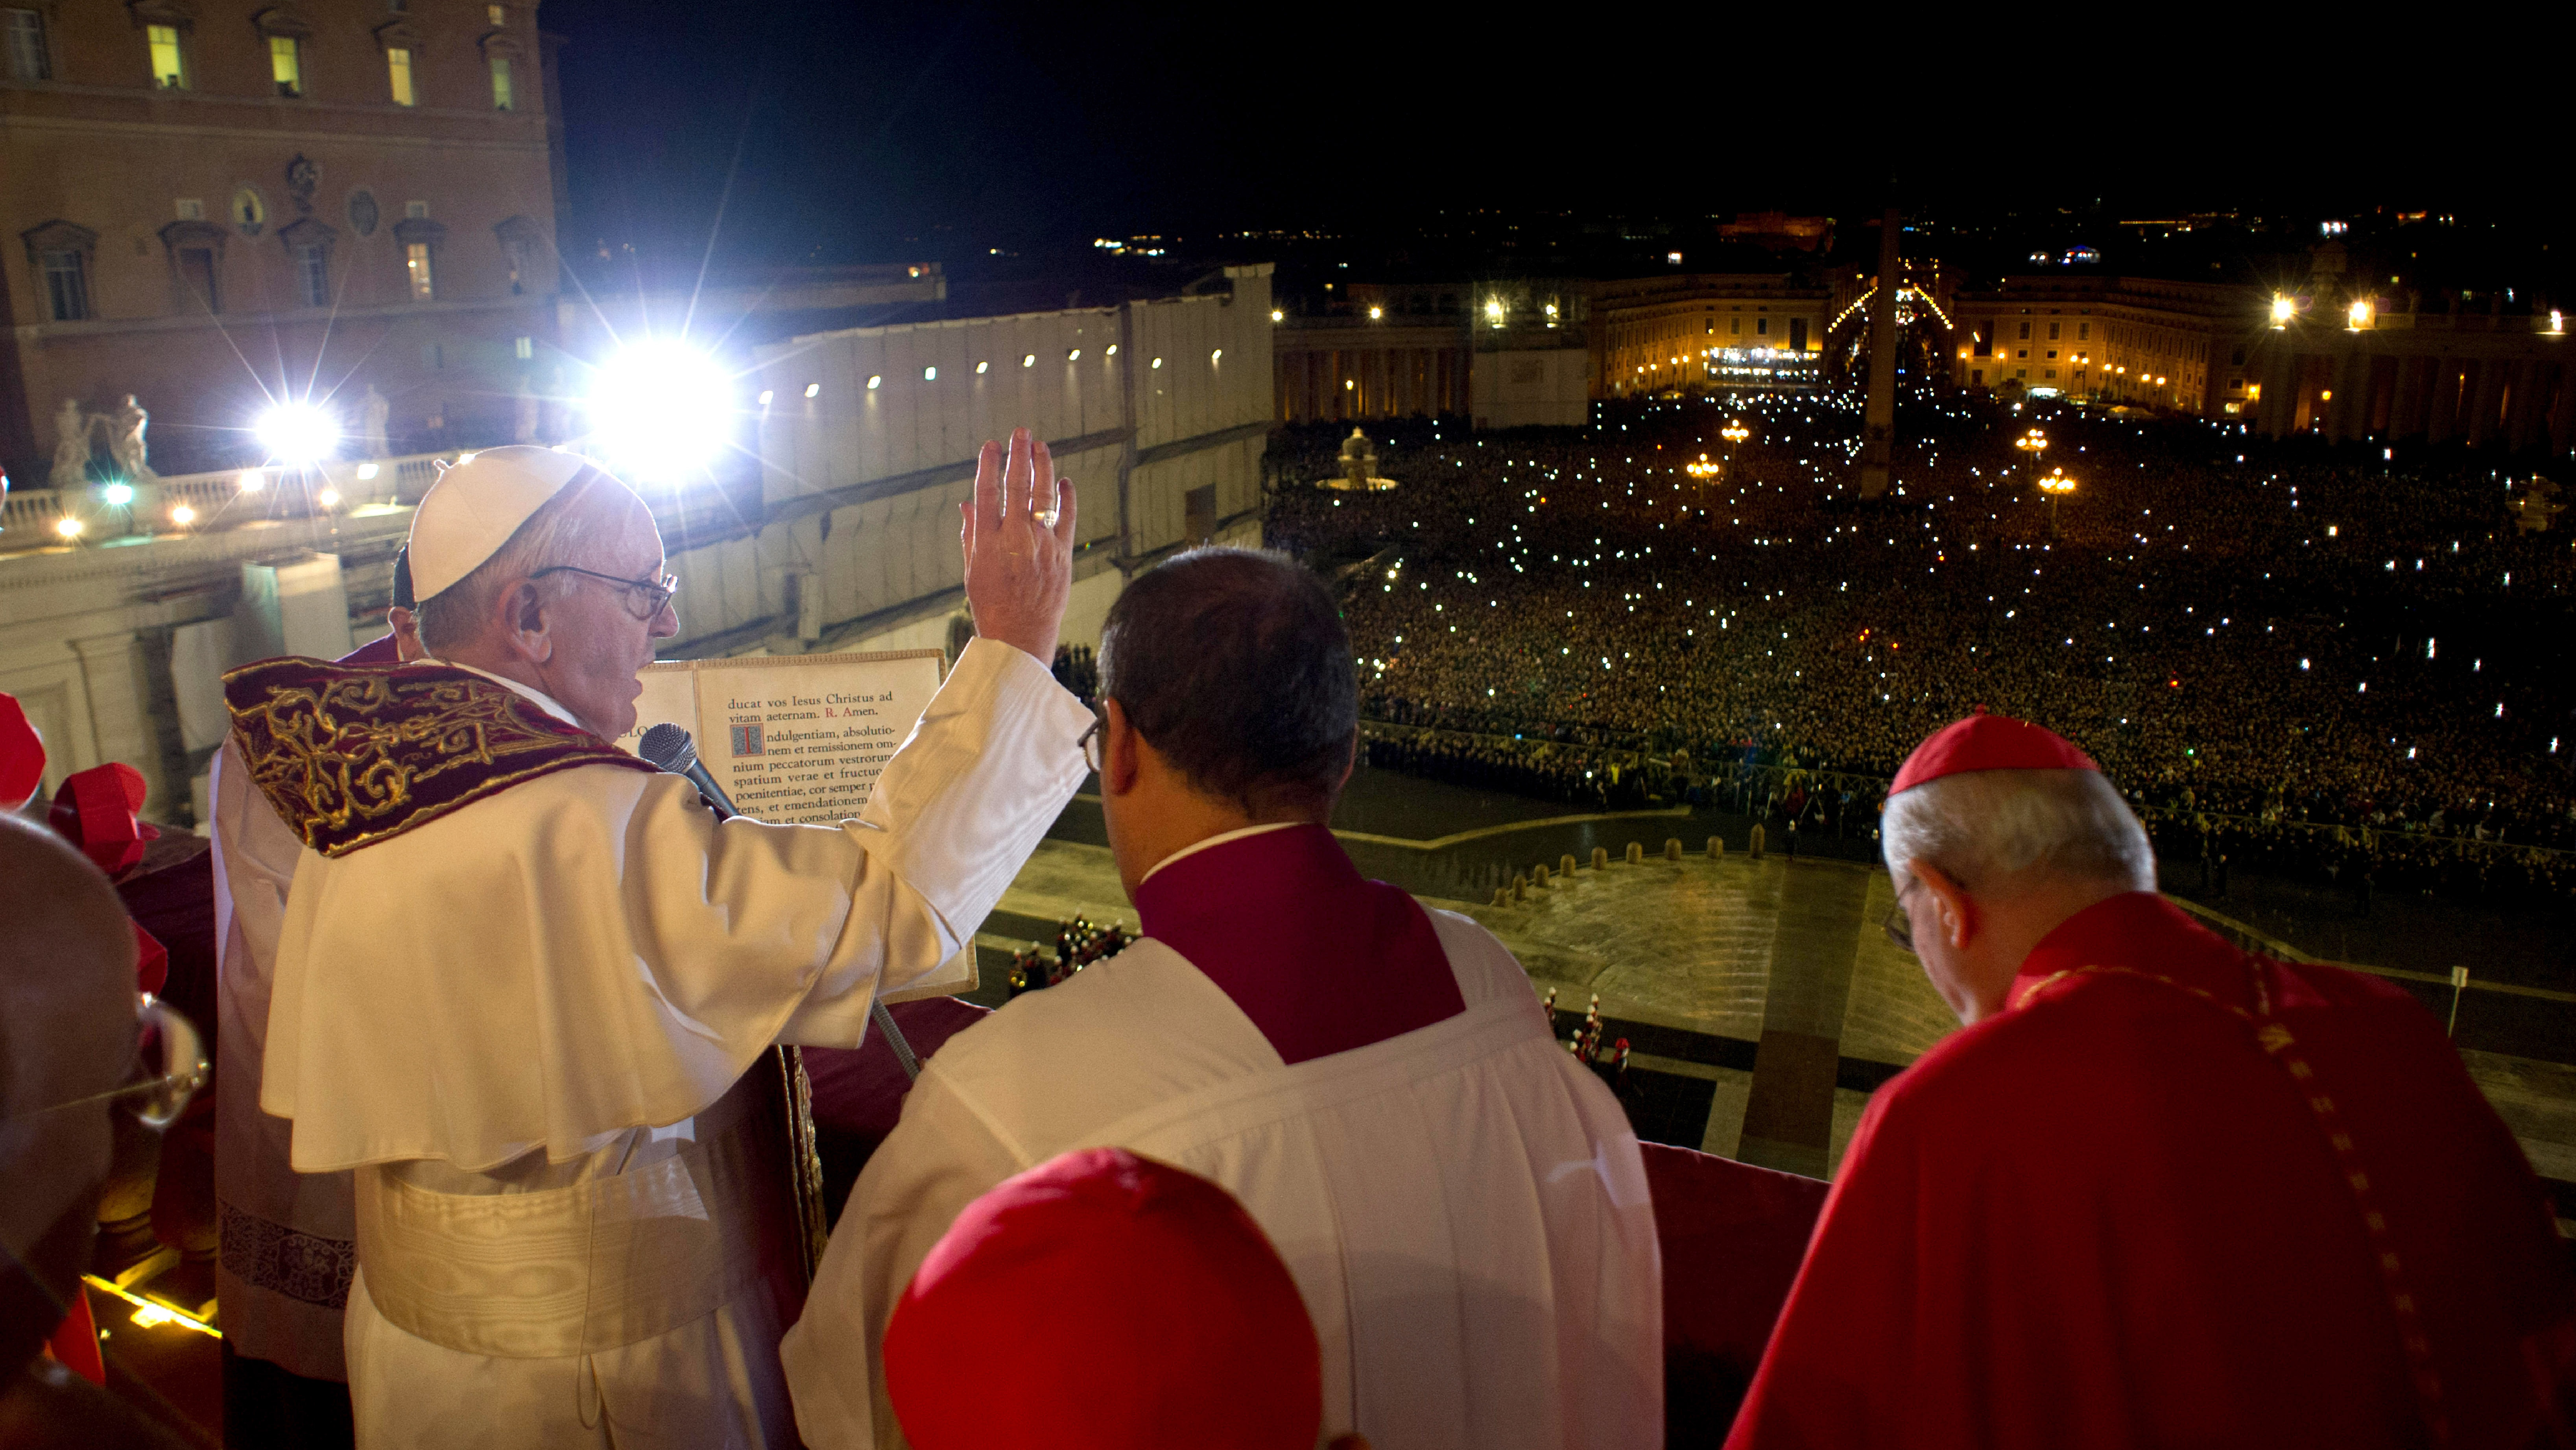 Pope Francis: A Saintly Name, Hold The 'I' : NPR